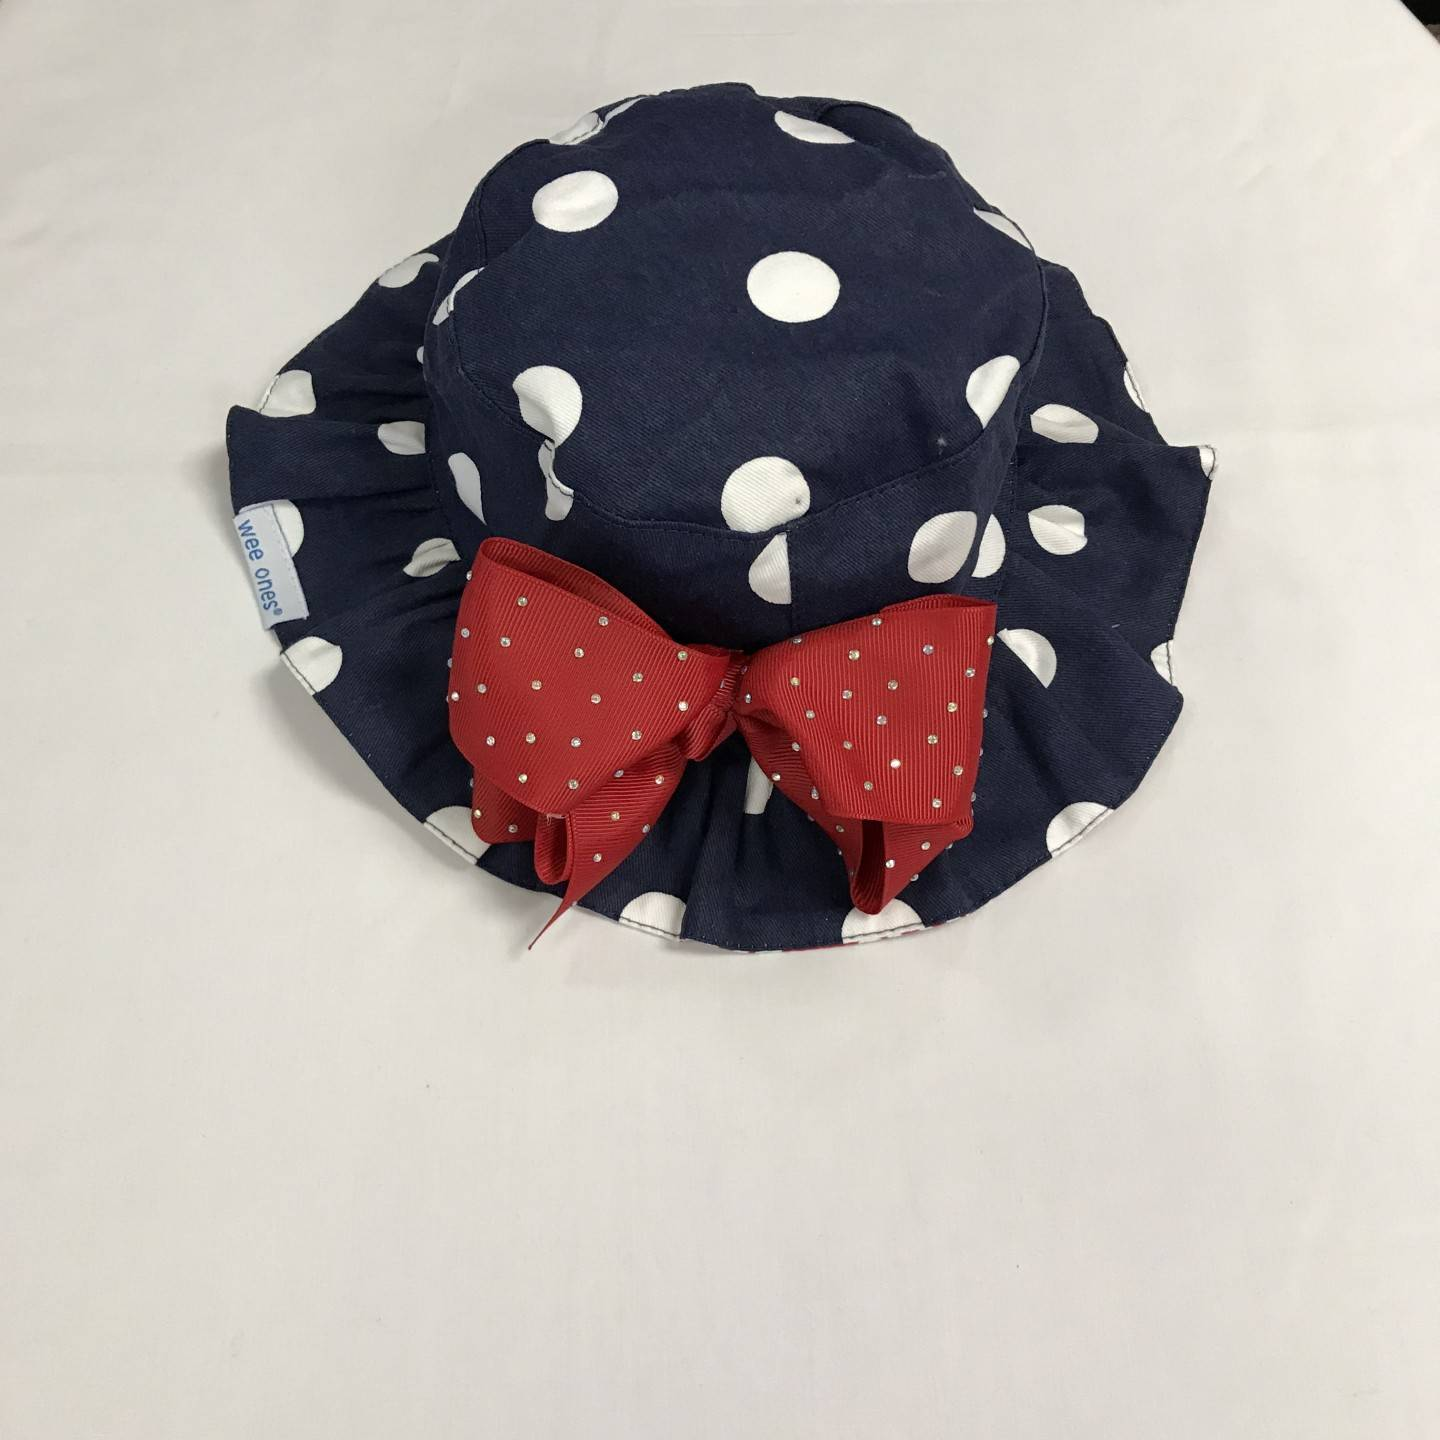 WEE ONES REVERSIBLE NAVY POLKA DOT SUN HAT SIZE 12-18 MONTHS